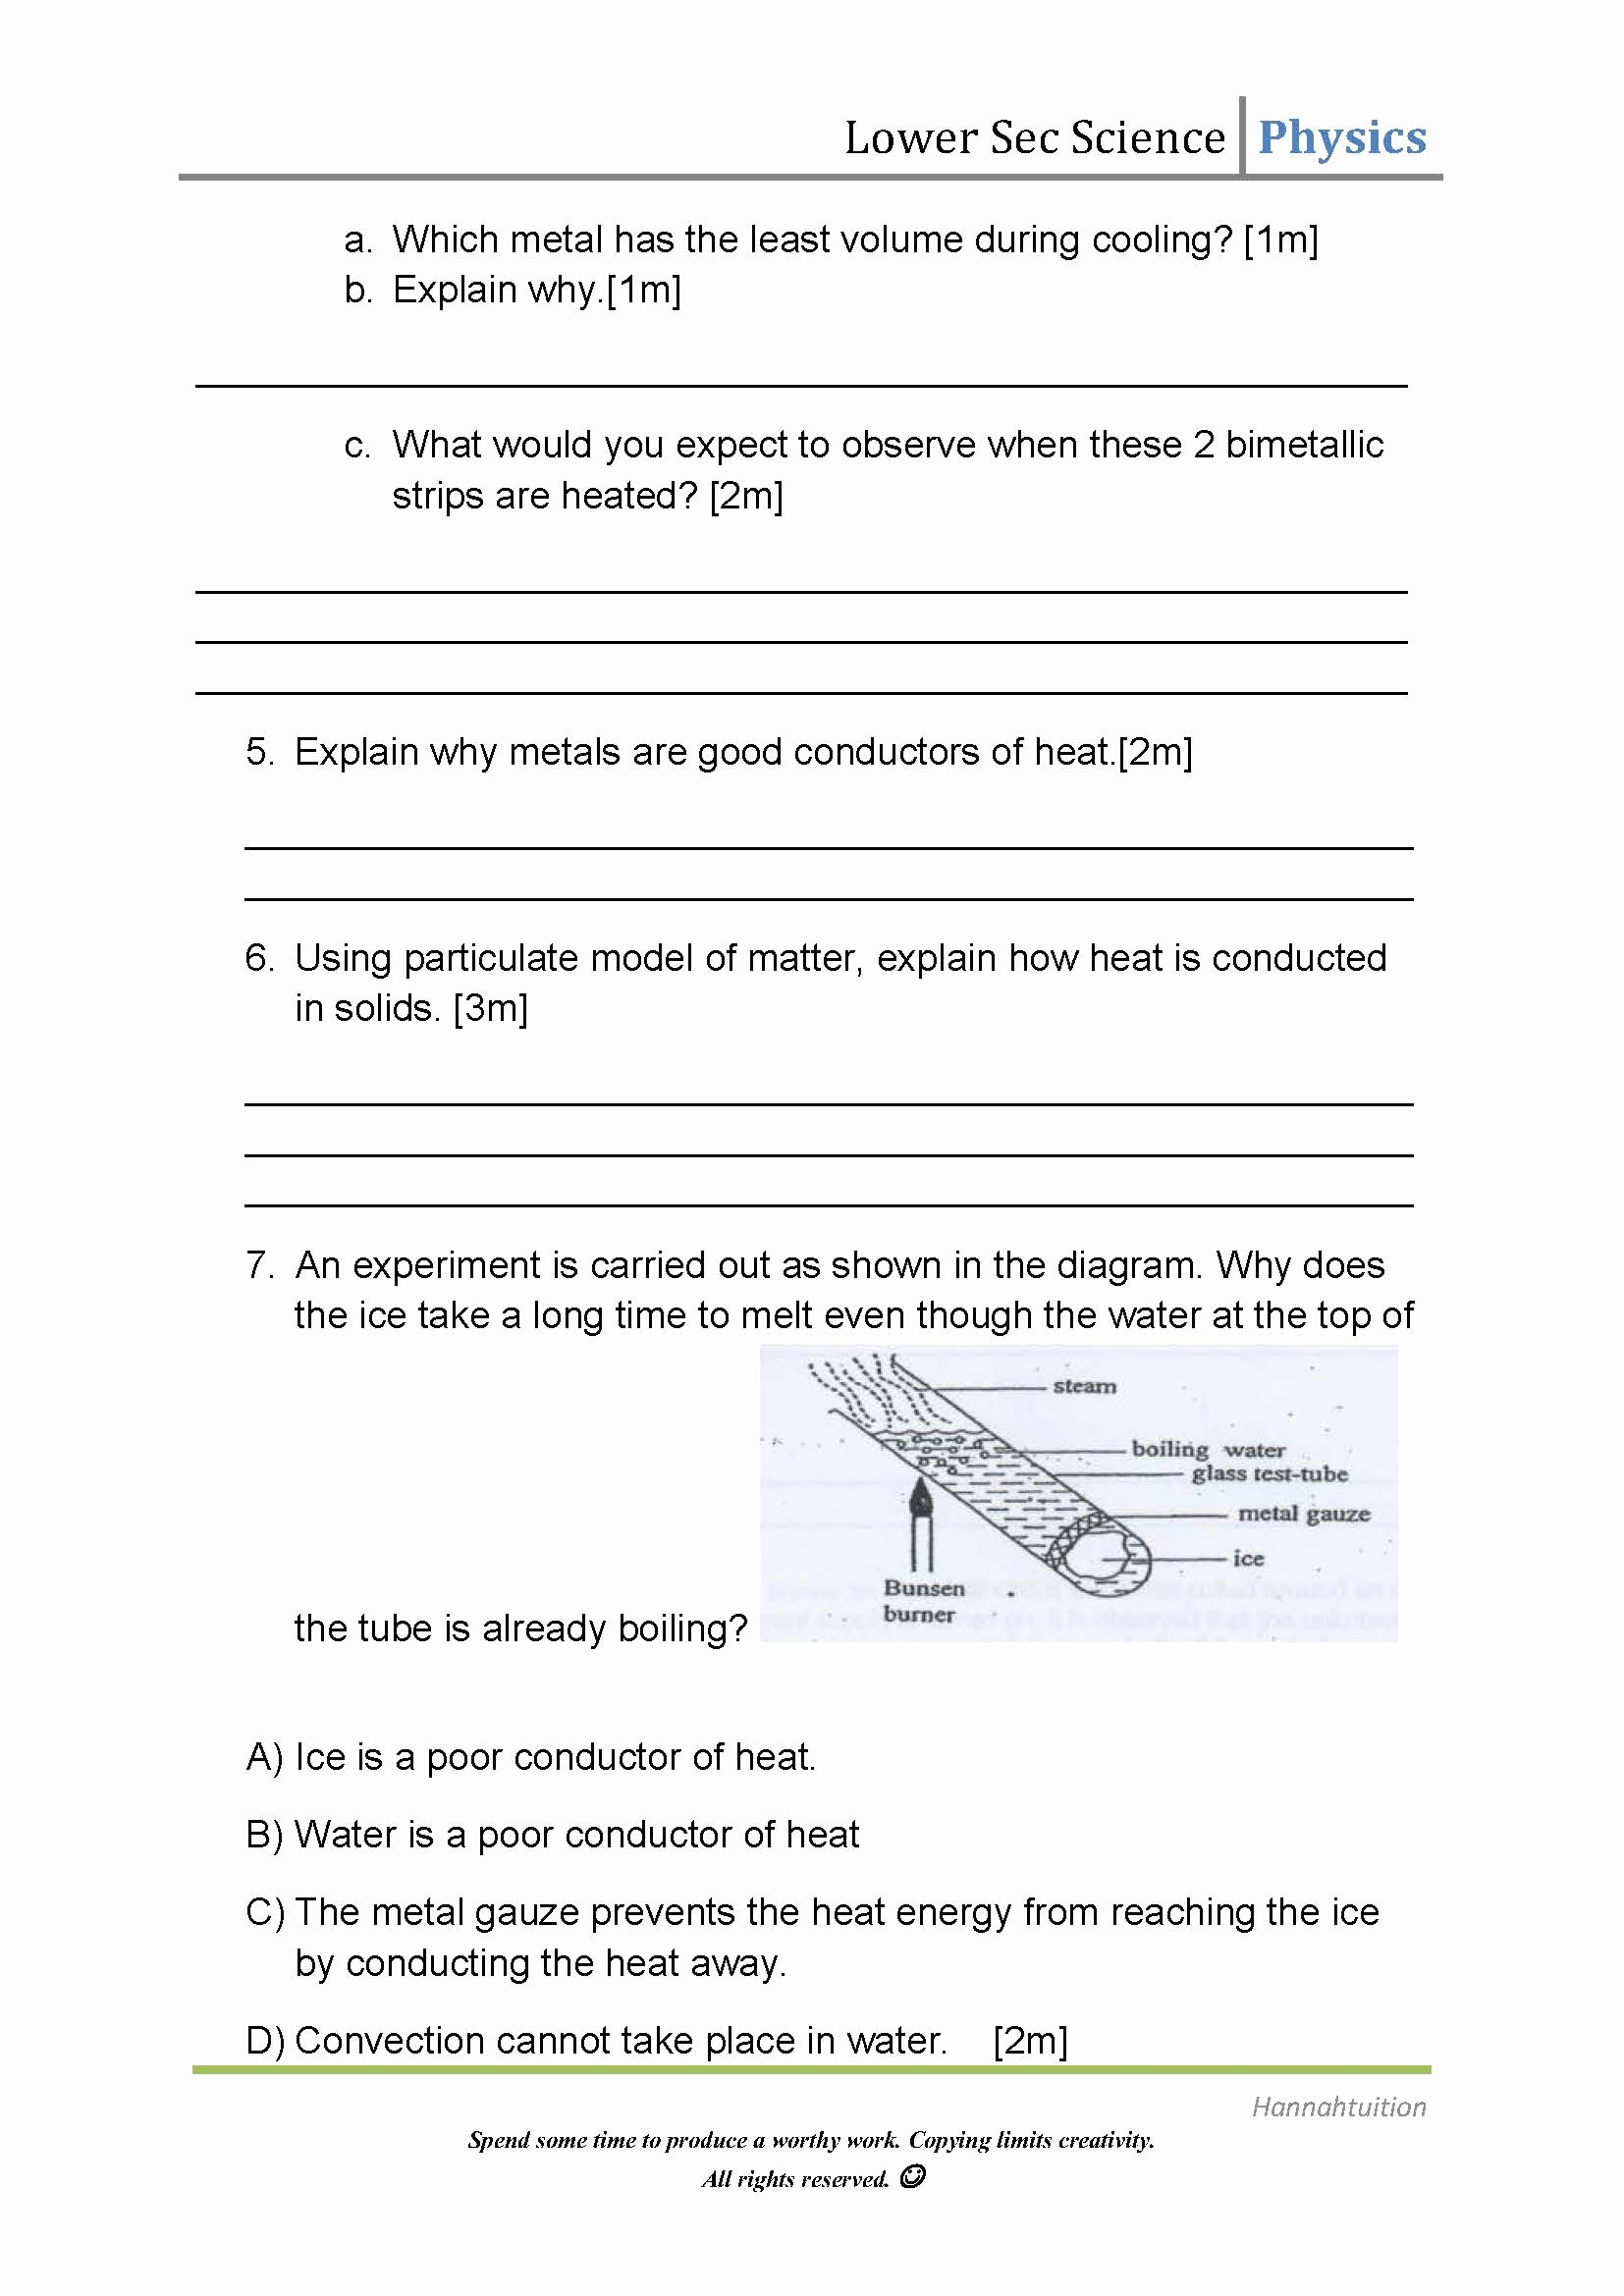 Heat Transfer Worksheet Answers New Methods Of Heat Transfer Answers Convection Heat Transfer